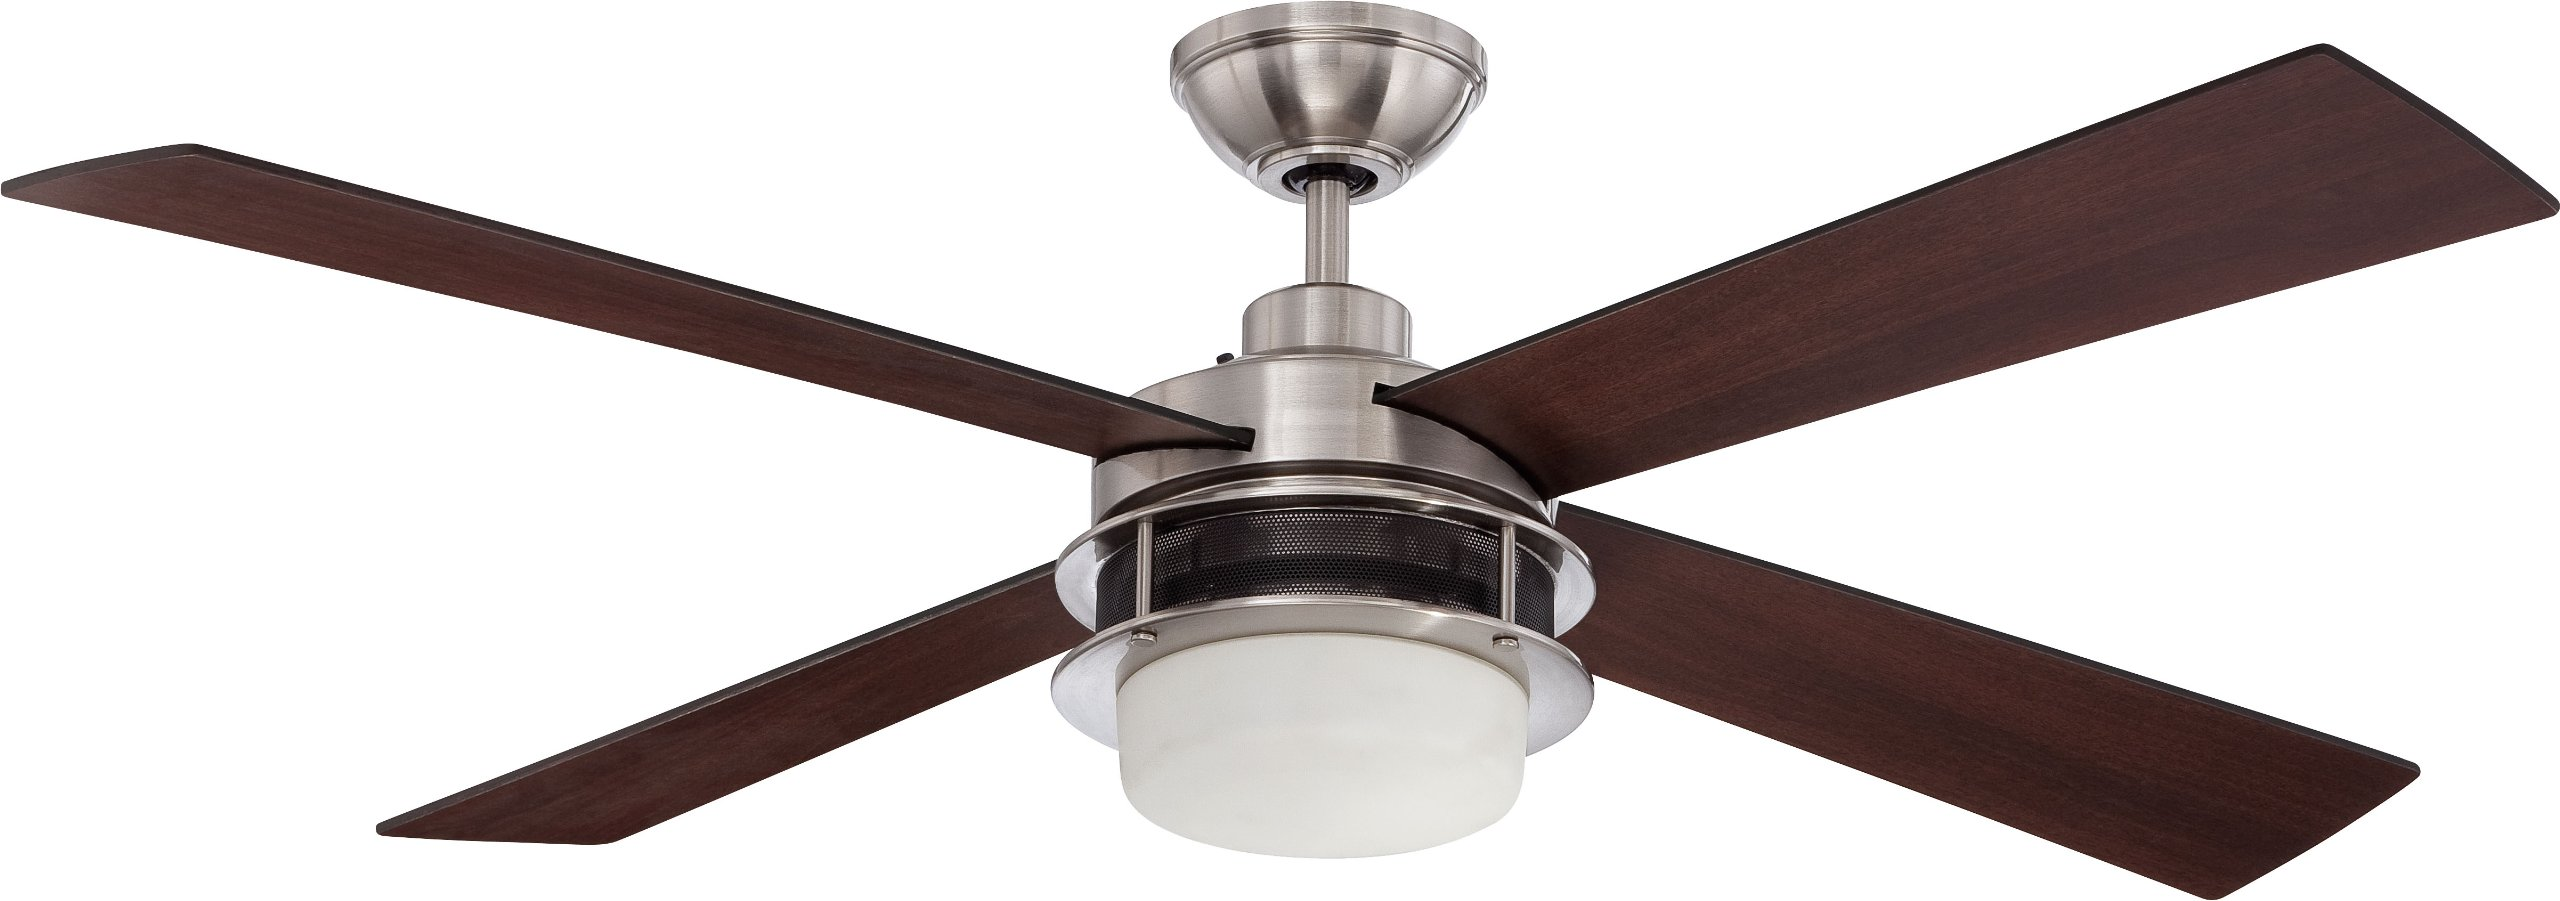 Craftmade UBR52BNK4 Ceiling Fan with Blades Included, 52''